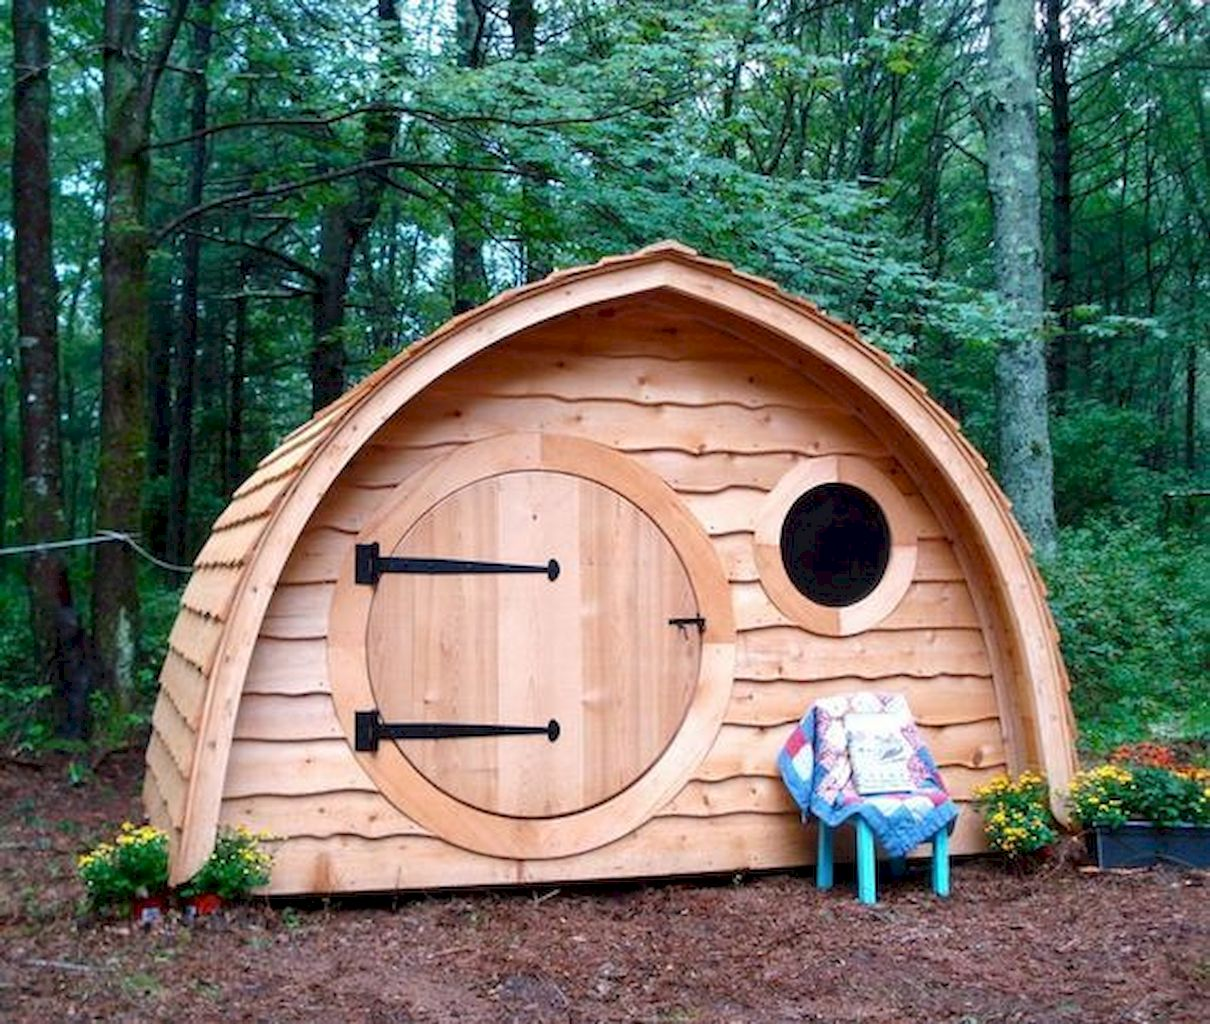 Dazzling Playhouse Plan Into Your Existing Backyard Space